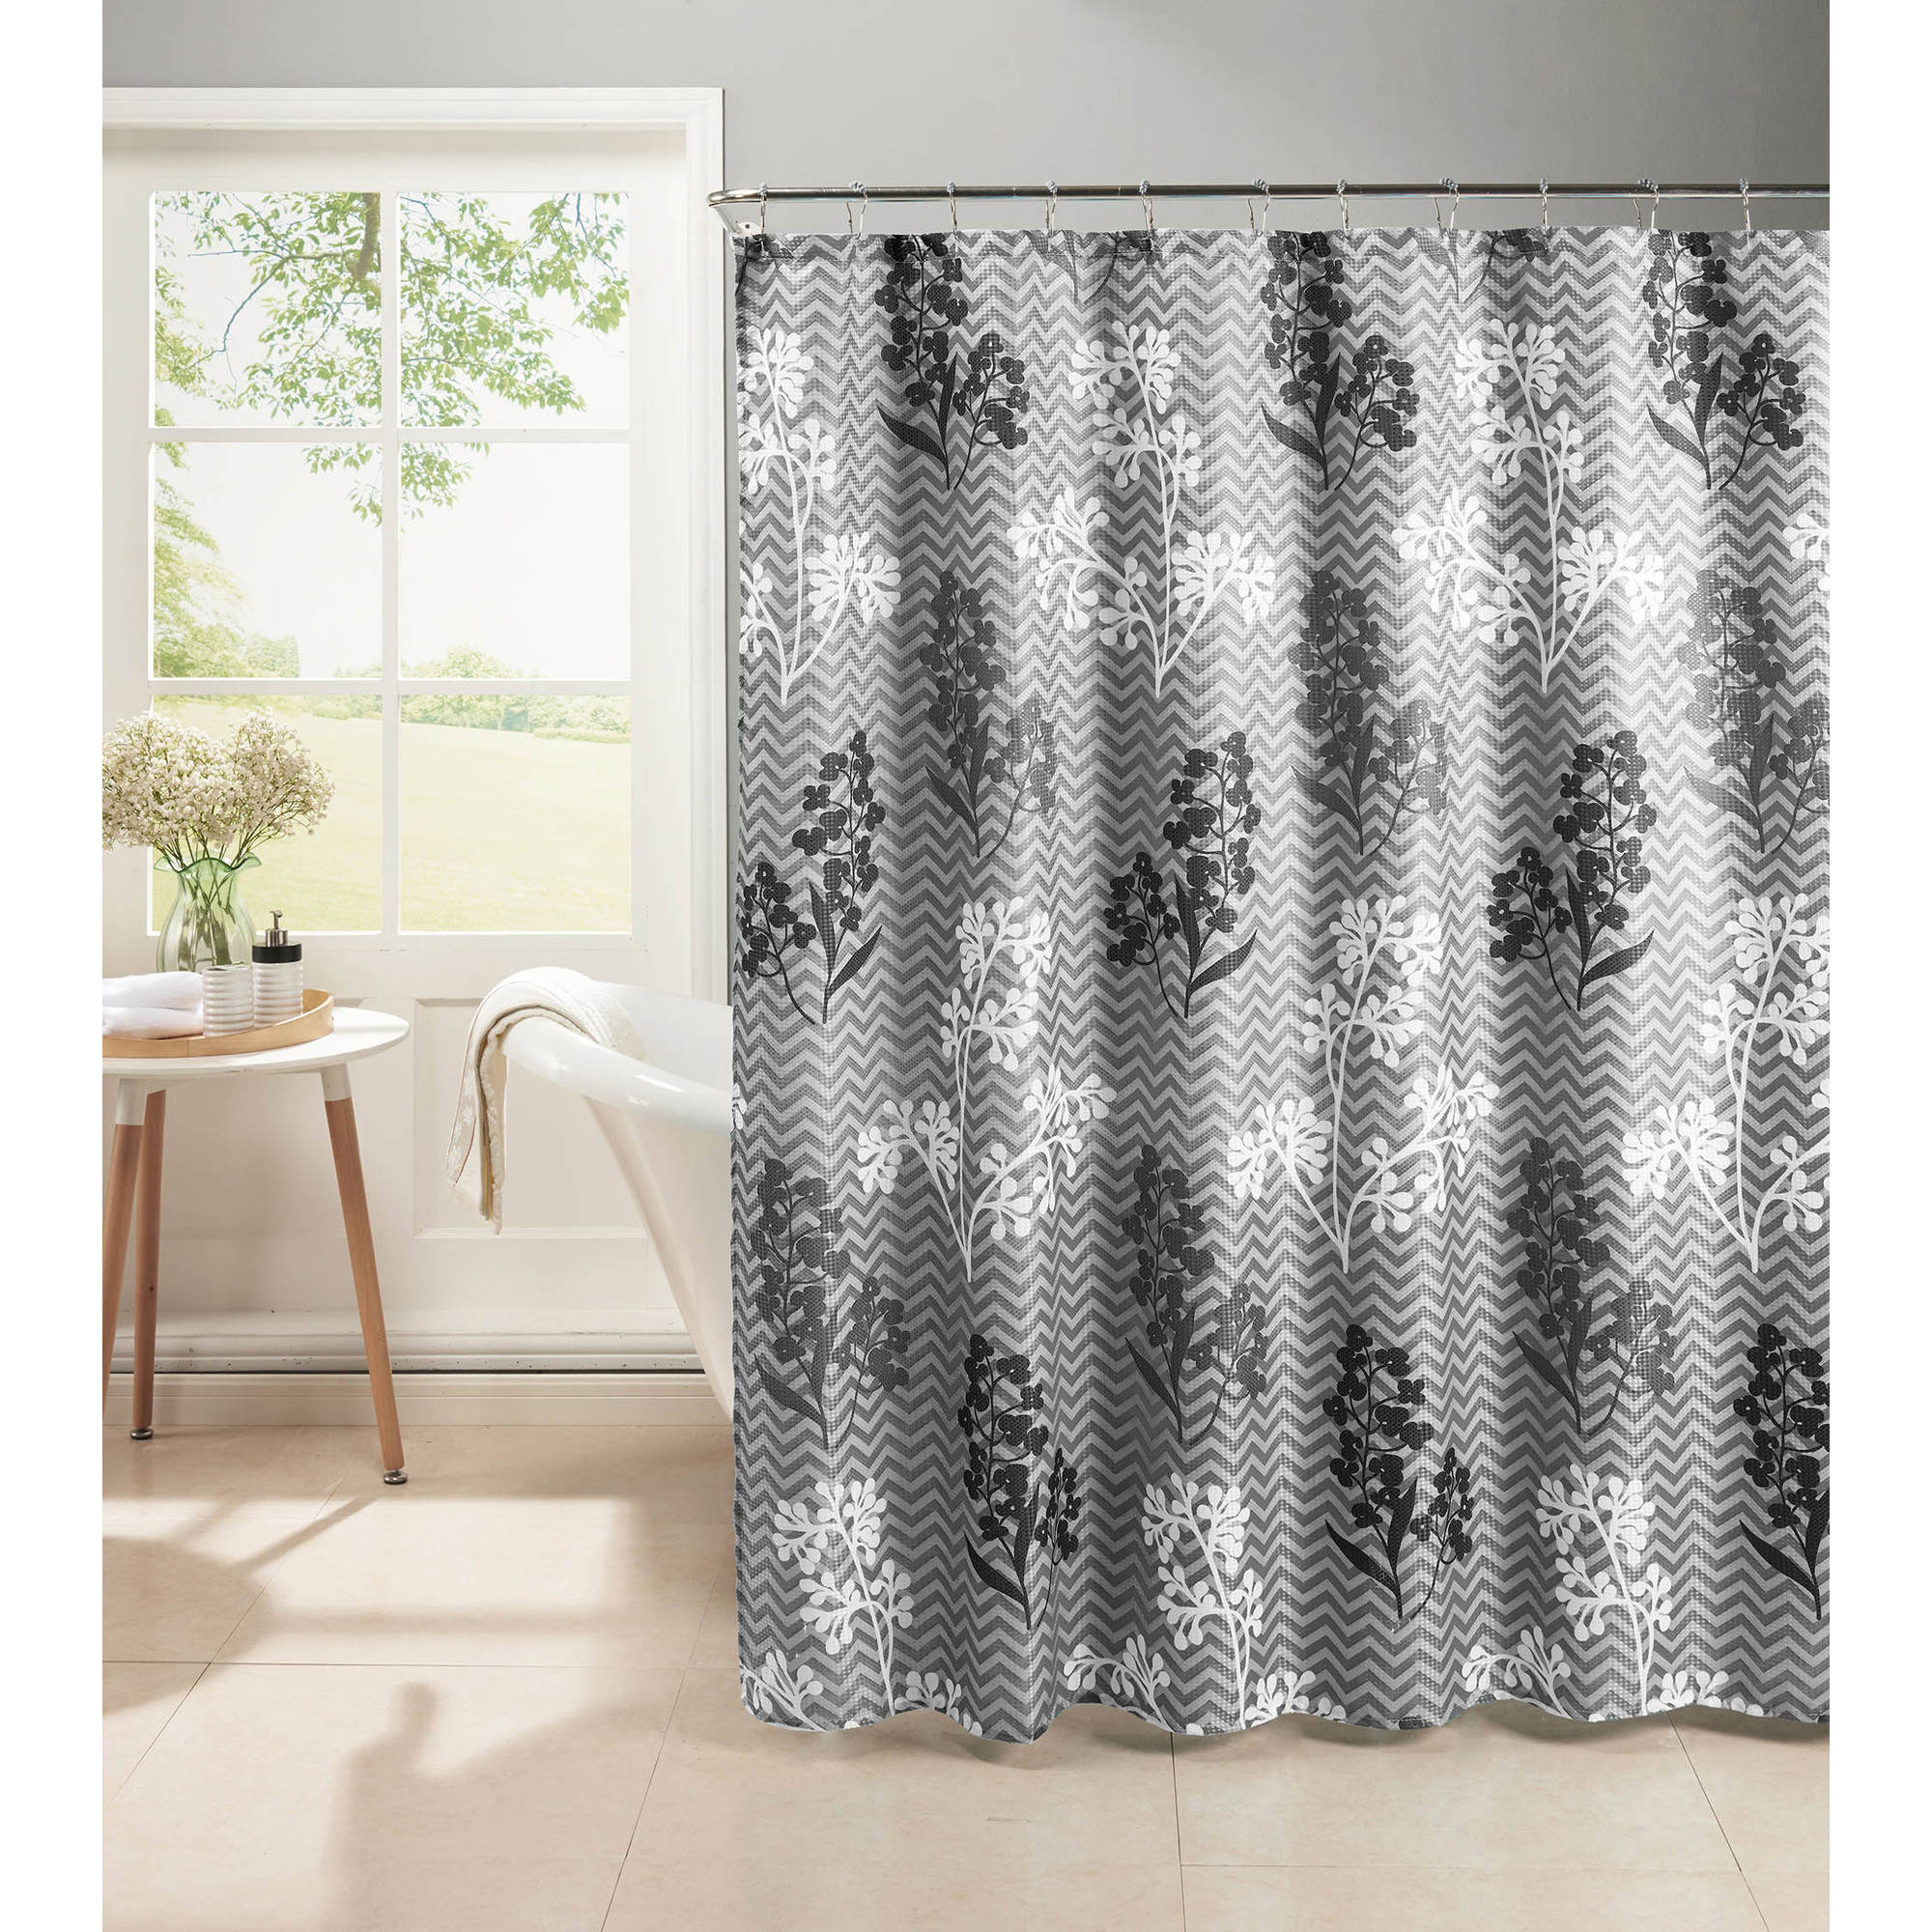 Whimsy Leaves Diamond Weave Textured Shower Curtain With Metal Roller Hooks